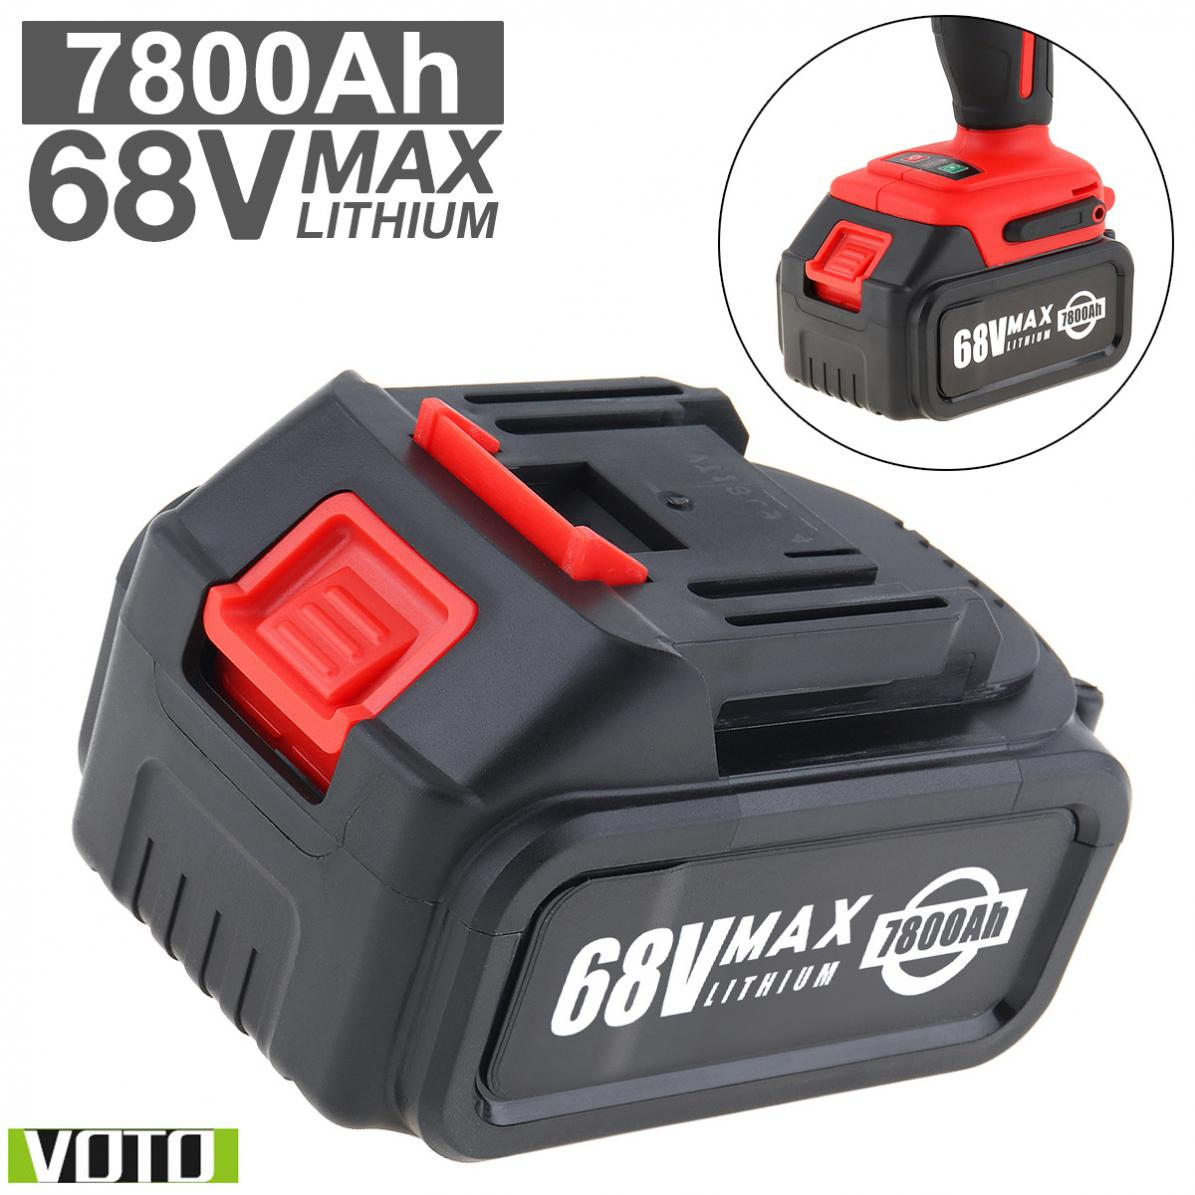 VOTO Battery Universal 68V Max 7800mAh Li-ion Rechargeable Battery With Flat Push Type And 2 Slots For Impact Electric Wrench